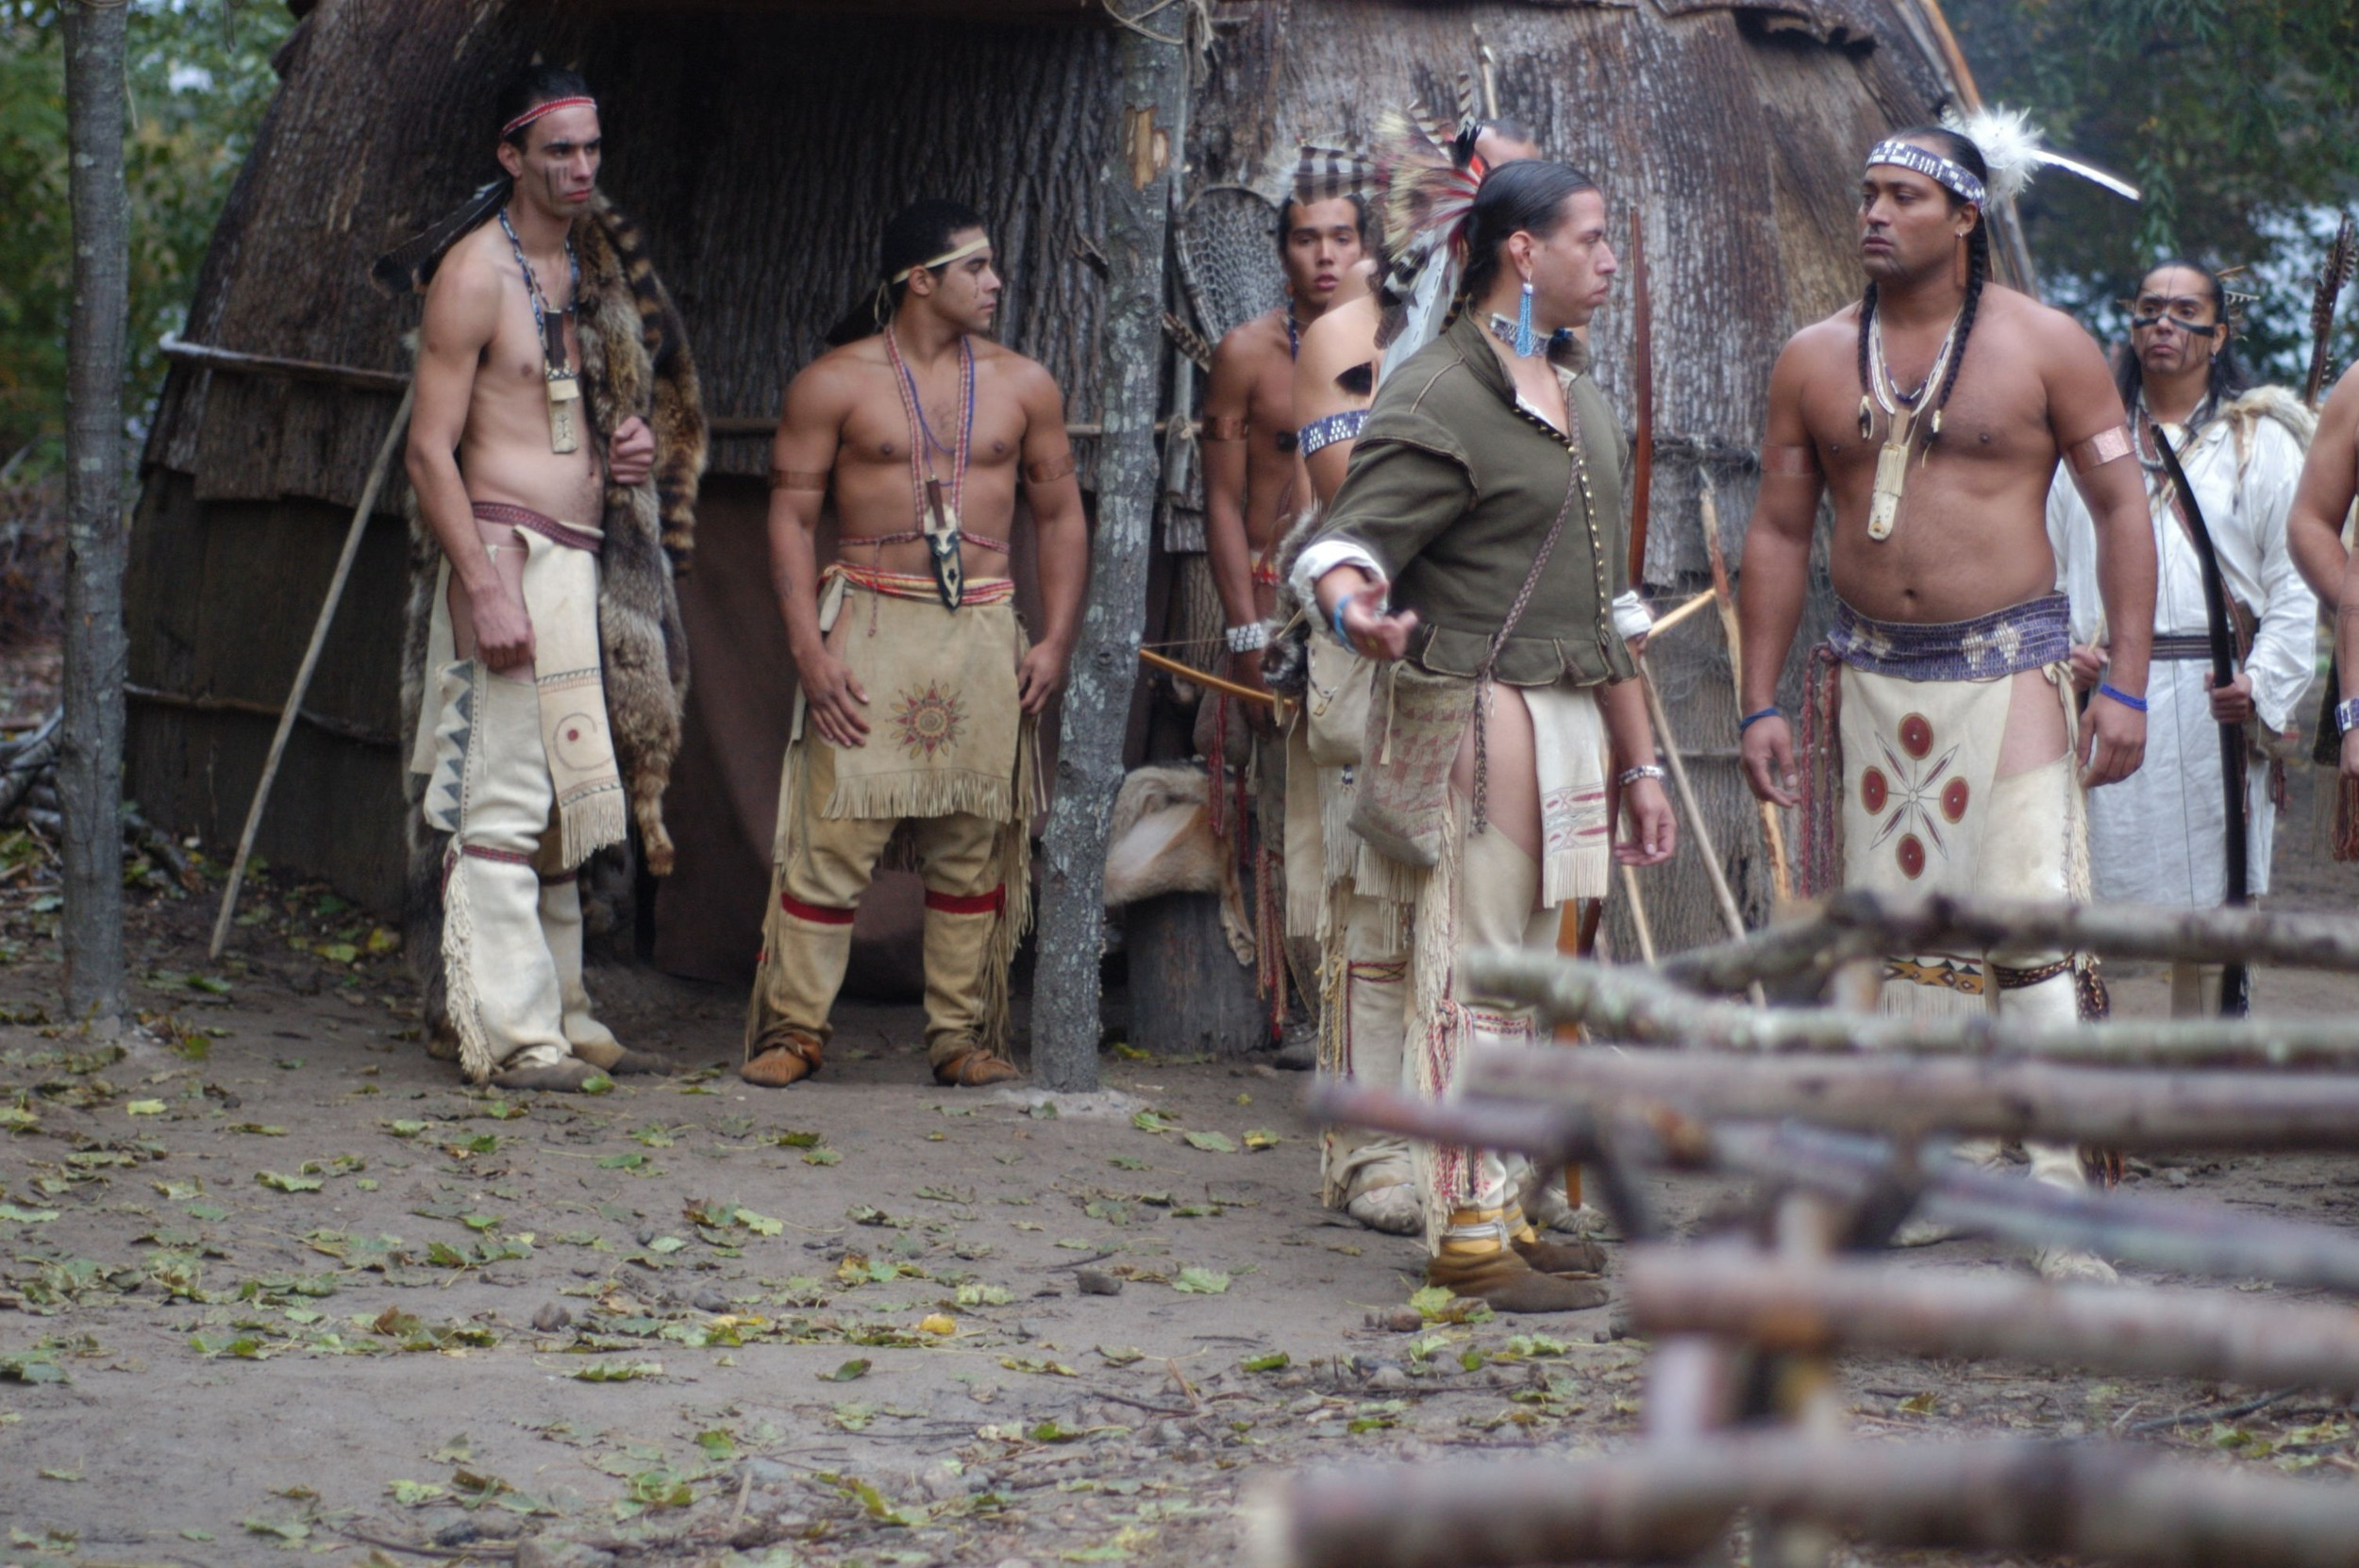 Wampanoag actor (Jonathan Perry, green shirt) portraying Tisquantum, speaking to Massasoit (played by Dave Weeden) in   Desperate Crossing  .  Promotional image courtesy of Lone Wolf Documentary Group.